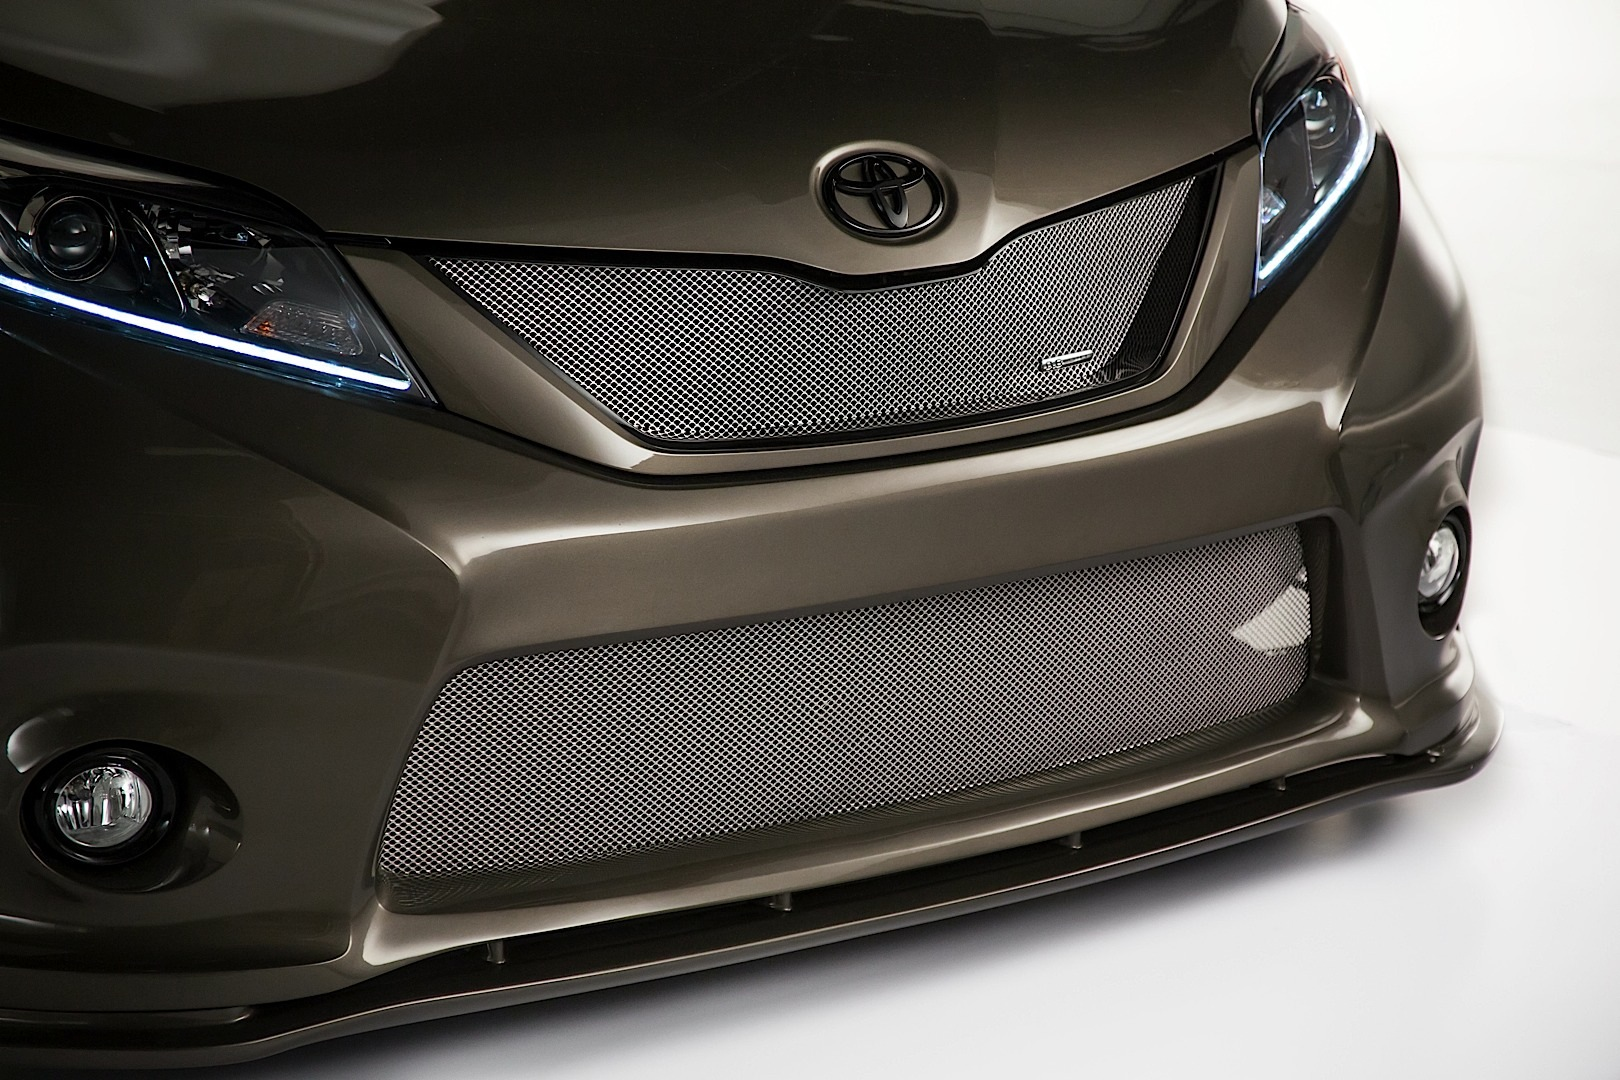 Toyota Ft 1 Concept Price >> Toyota Bringing Widebody Sienna, Yaris, Baja Trucks and FT-1 Concept to 2014 SEMA - autoevolution